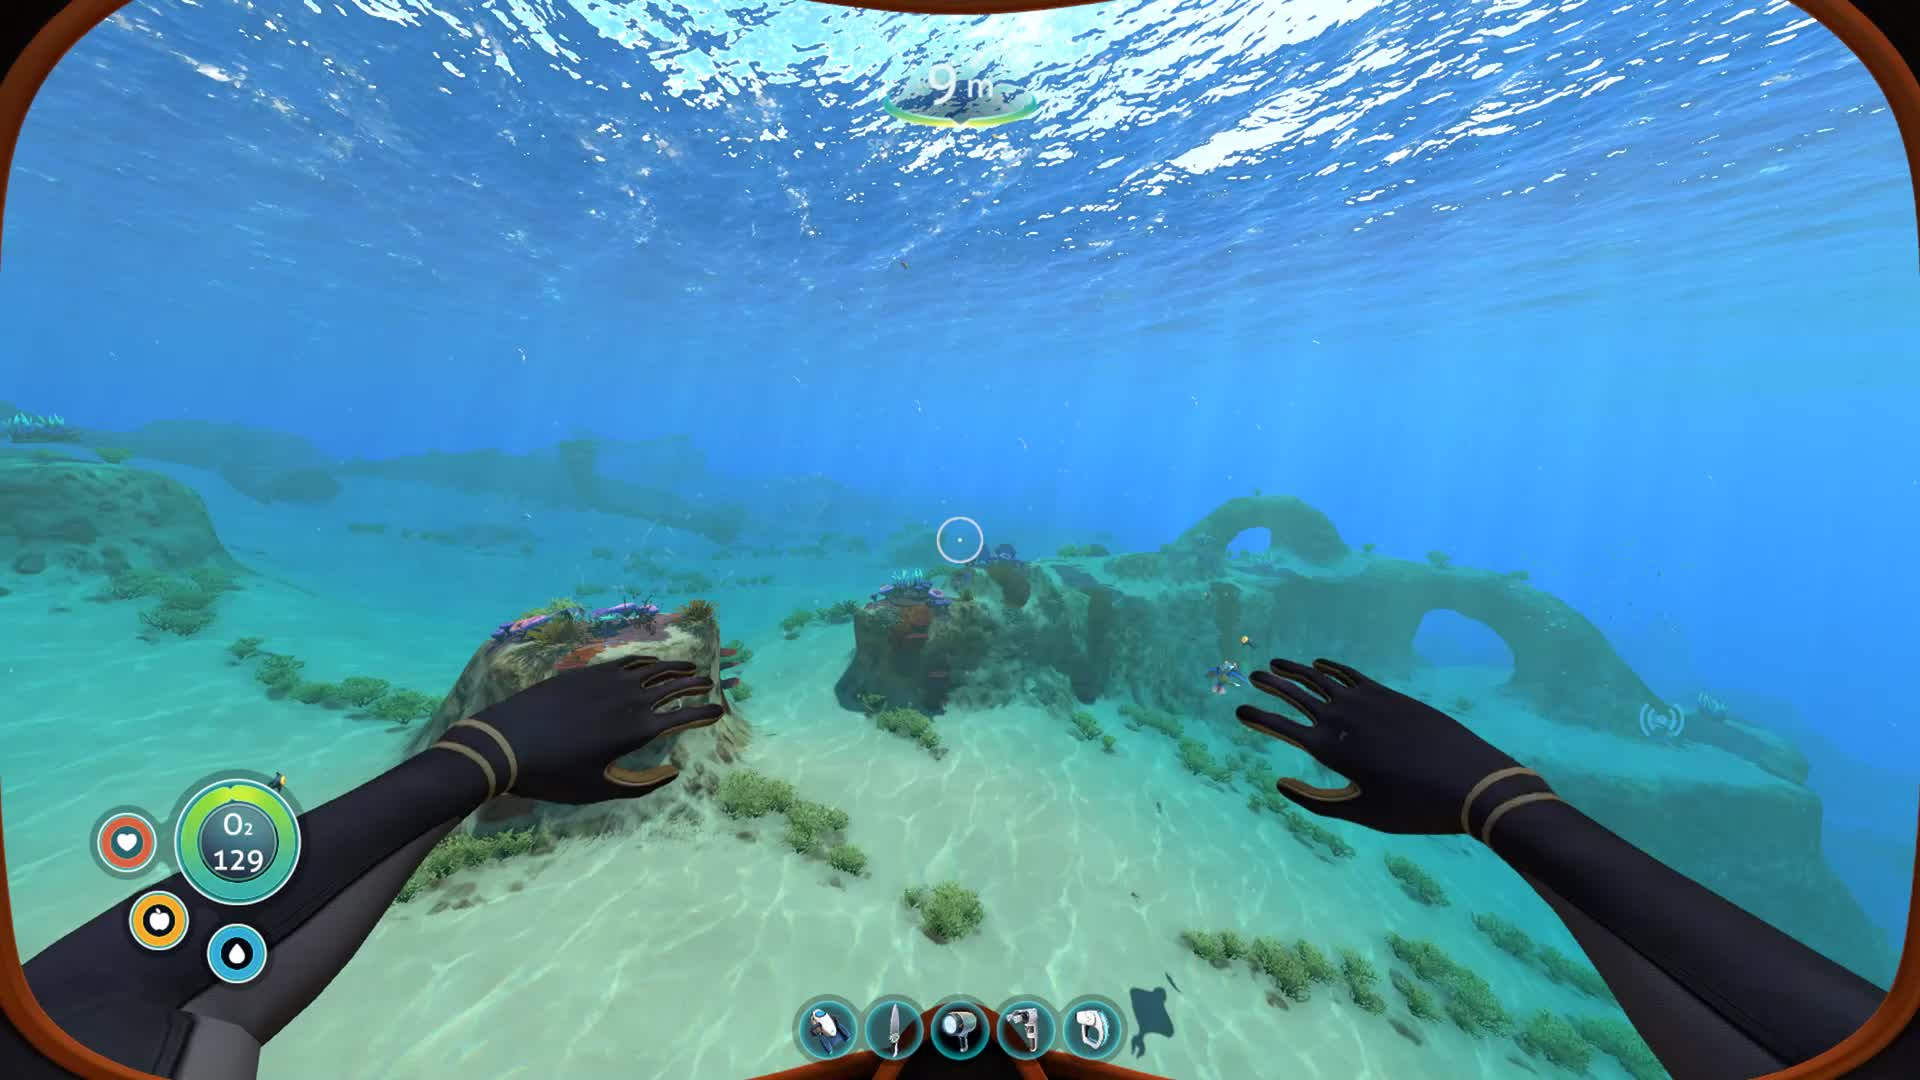 Subnautica, Swimming, Underwater, Video Game, Subnautica Swimming GIFs